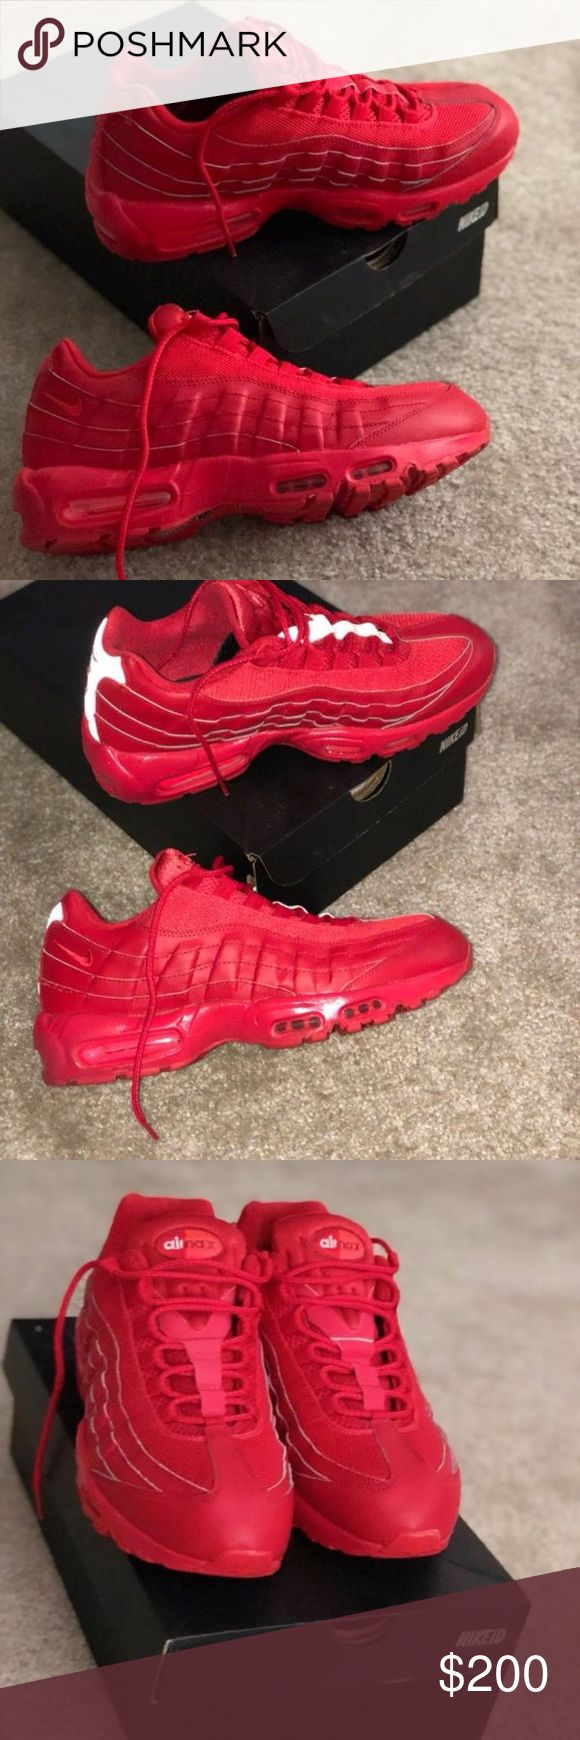 Nike air max 95 Nike ID (exclusive) red edition❗️ Great condition comes with box Nike Shoes Sneakers